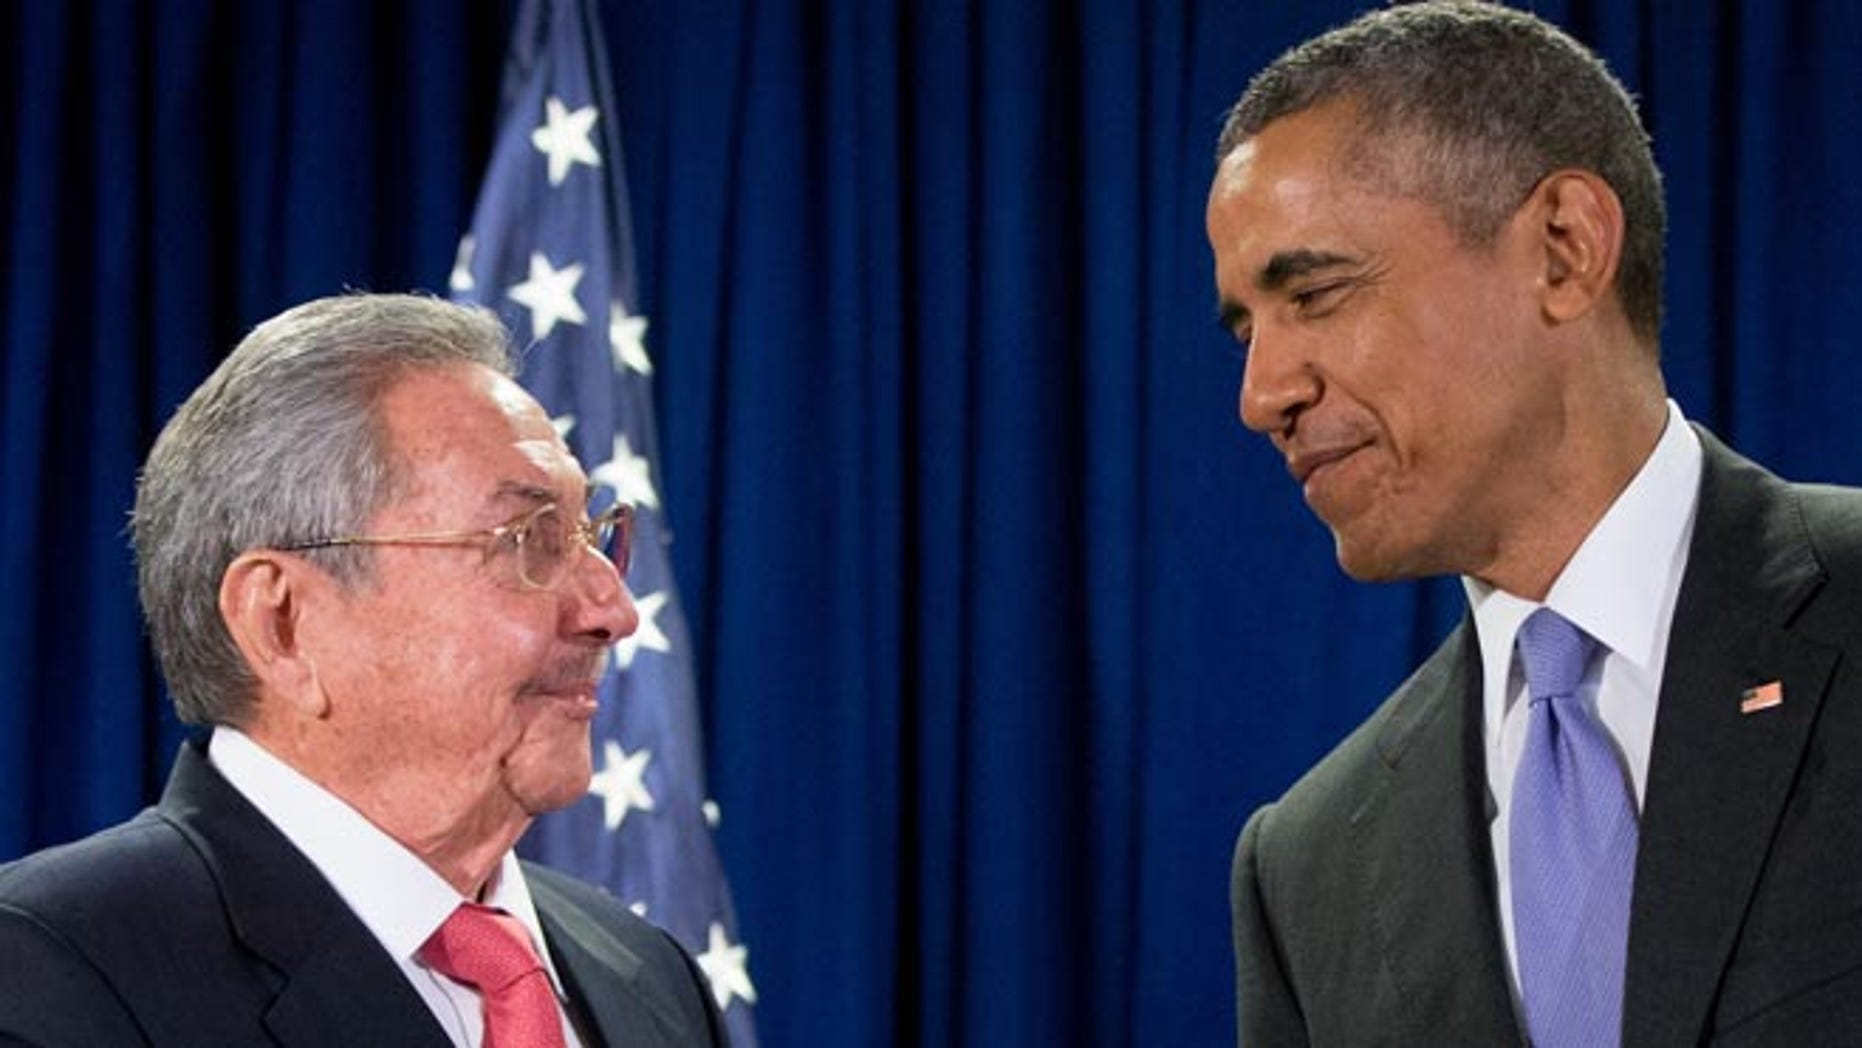 FILE - In this Tuesday, Sept. 29, 2015 file photo, U.S. President Barack Obama stands with Cuba's President Raul Castro before a bilateral meeting at the United Nations headquarters. (AP Photo/Andrew Harnik)